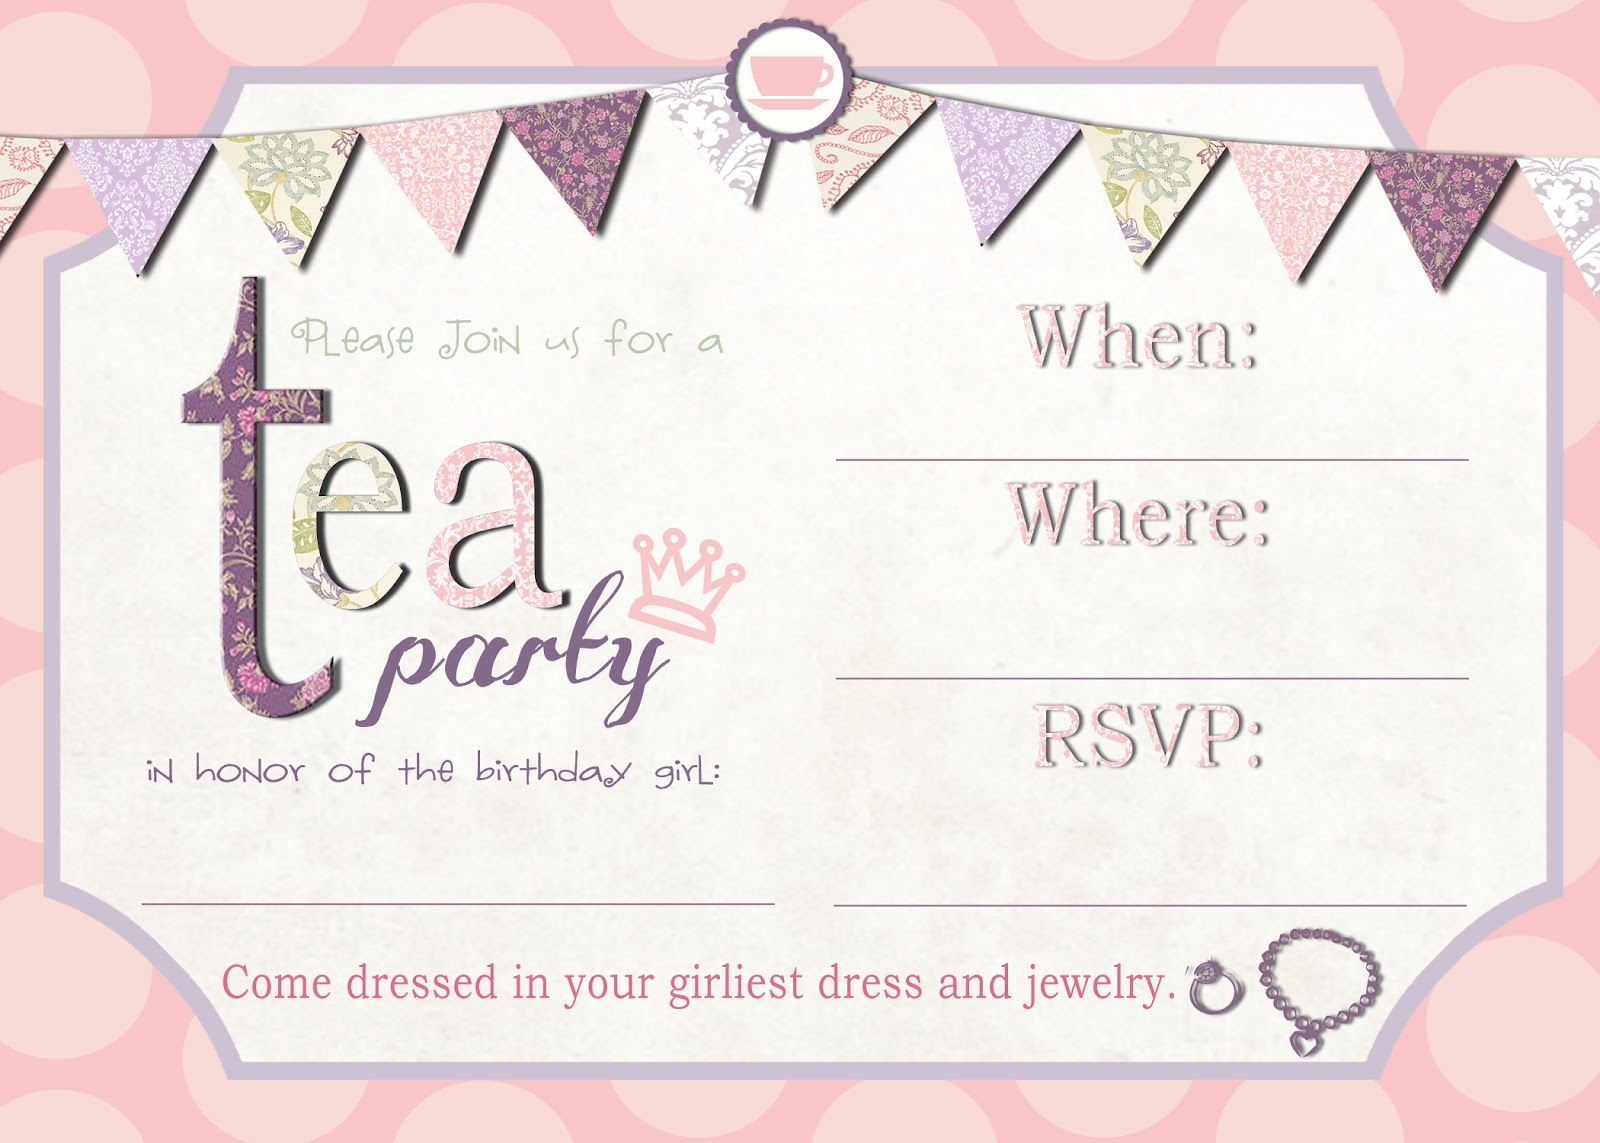 printable party invitations invitations for a princess tea party birthday invitations printable template tea party birthday invitations tea party ideas tea party invitation template princess tea party